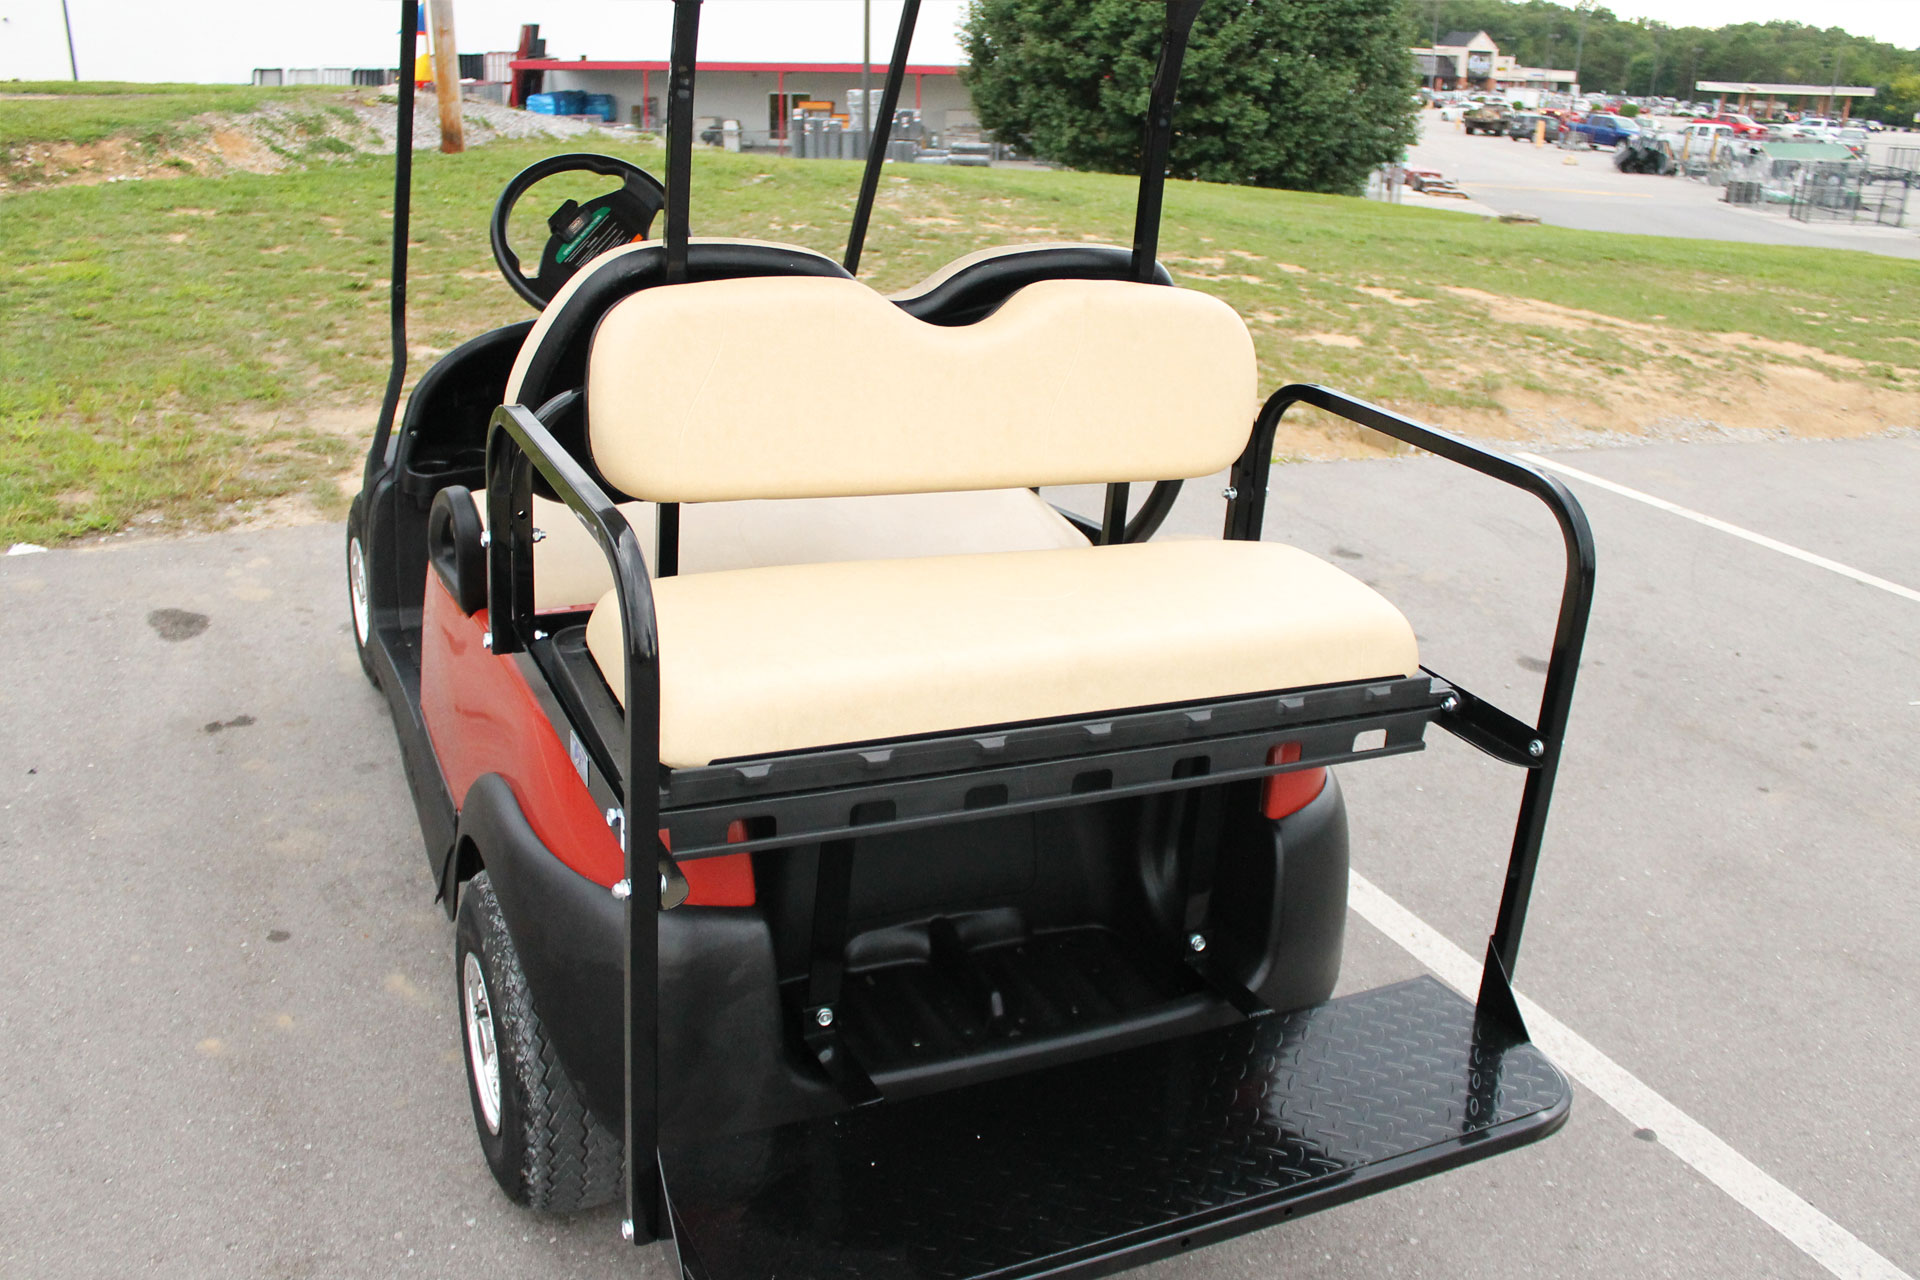 2014 Club Car Precedent With Rear Flip Seat And Ss Wheel Covers 09